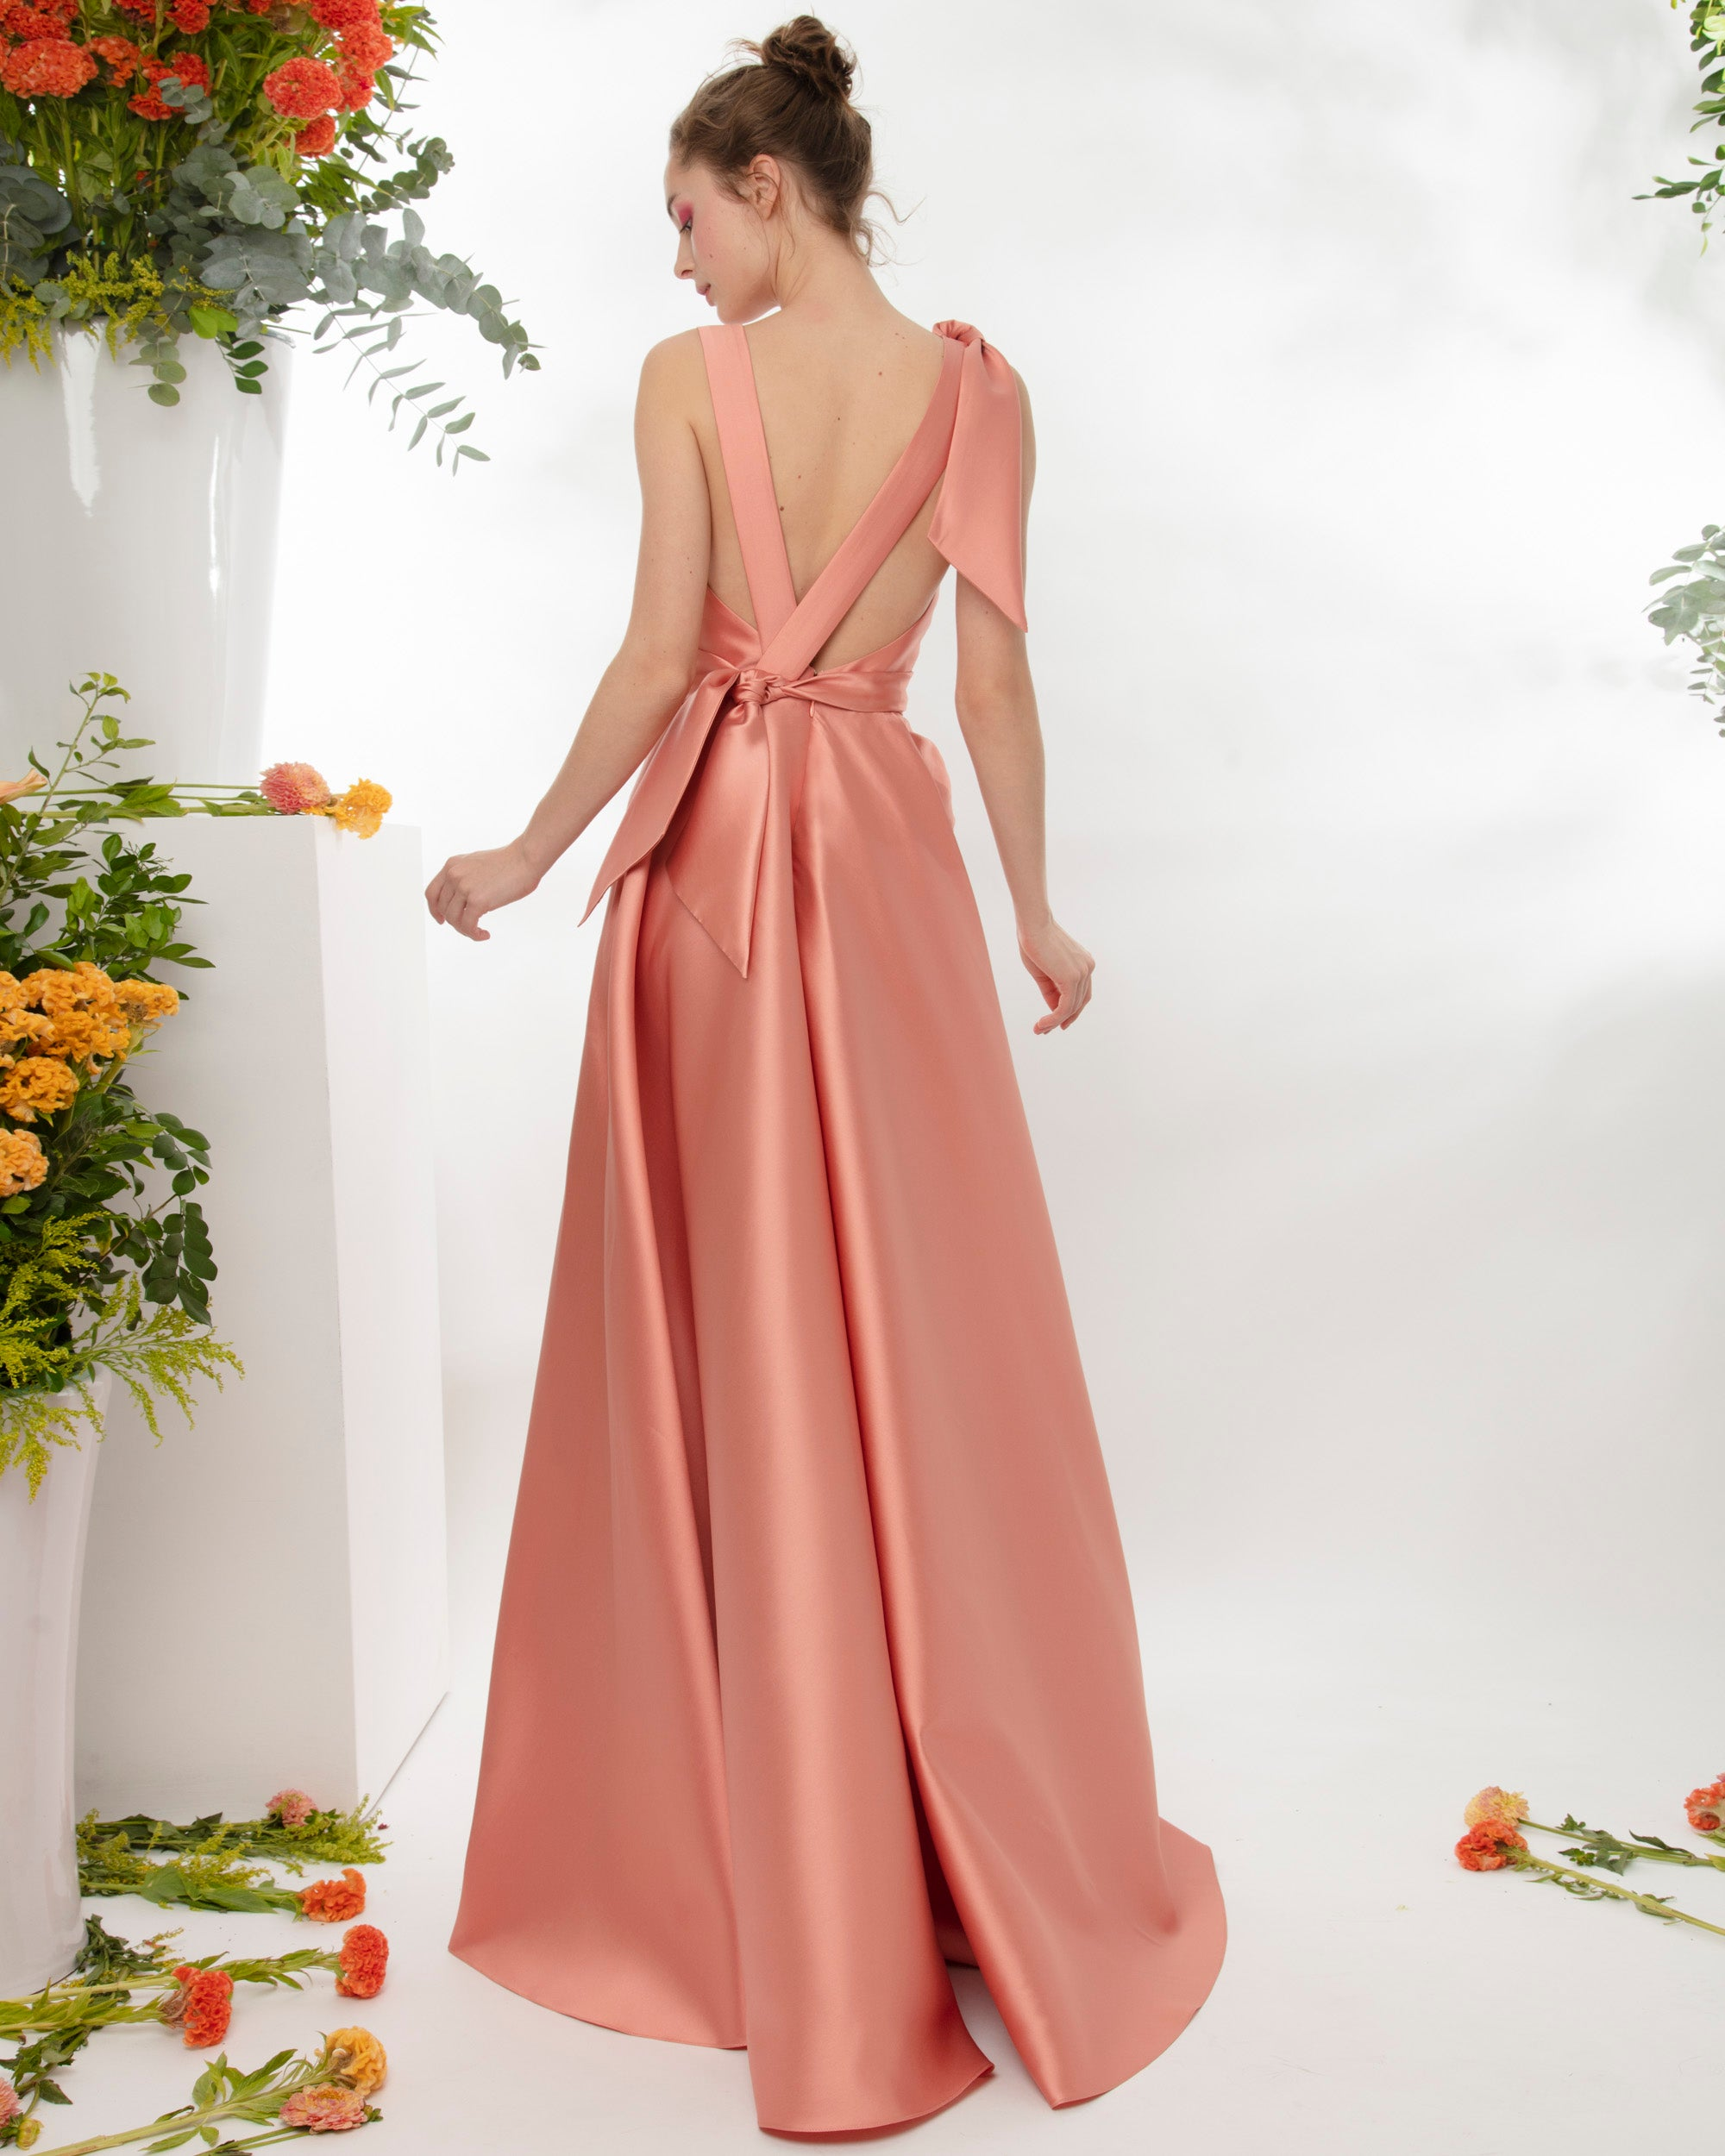 Long Dress With Bow Details